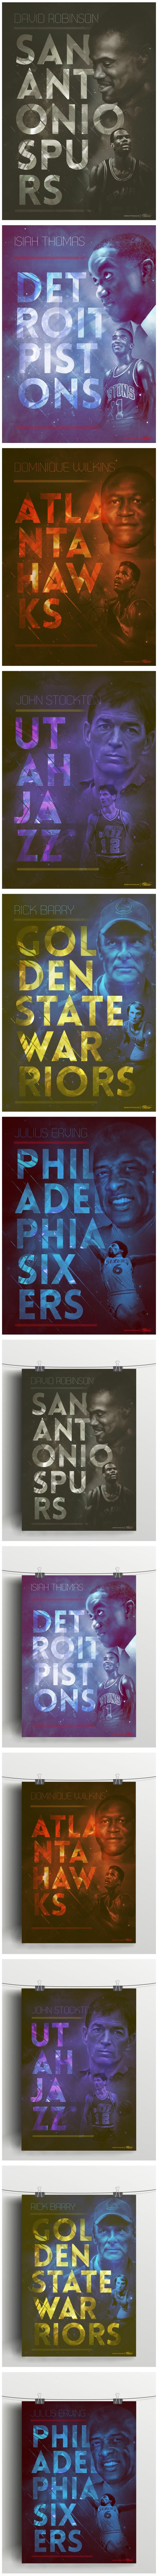 Vintage NBA posters - Collection 2 - by Caroline Blanchet